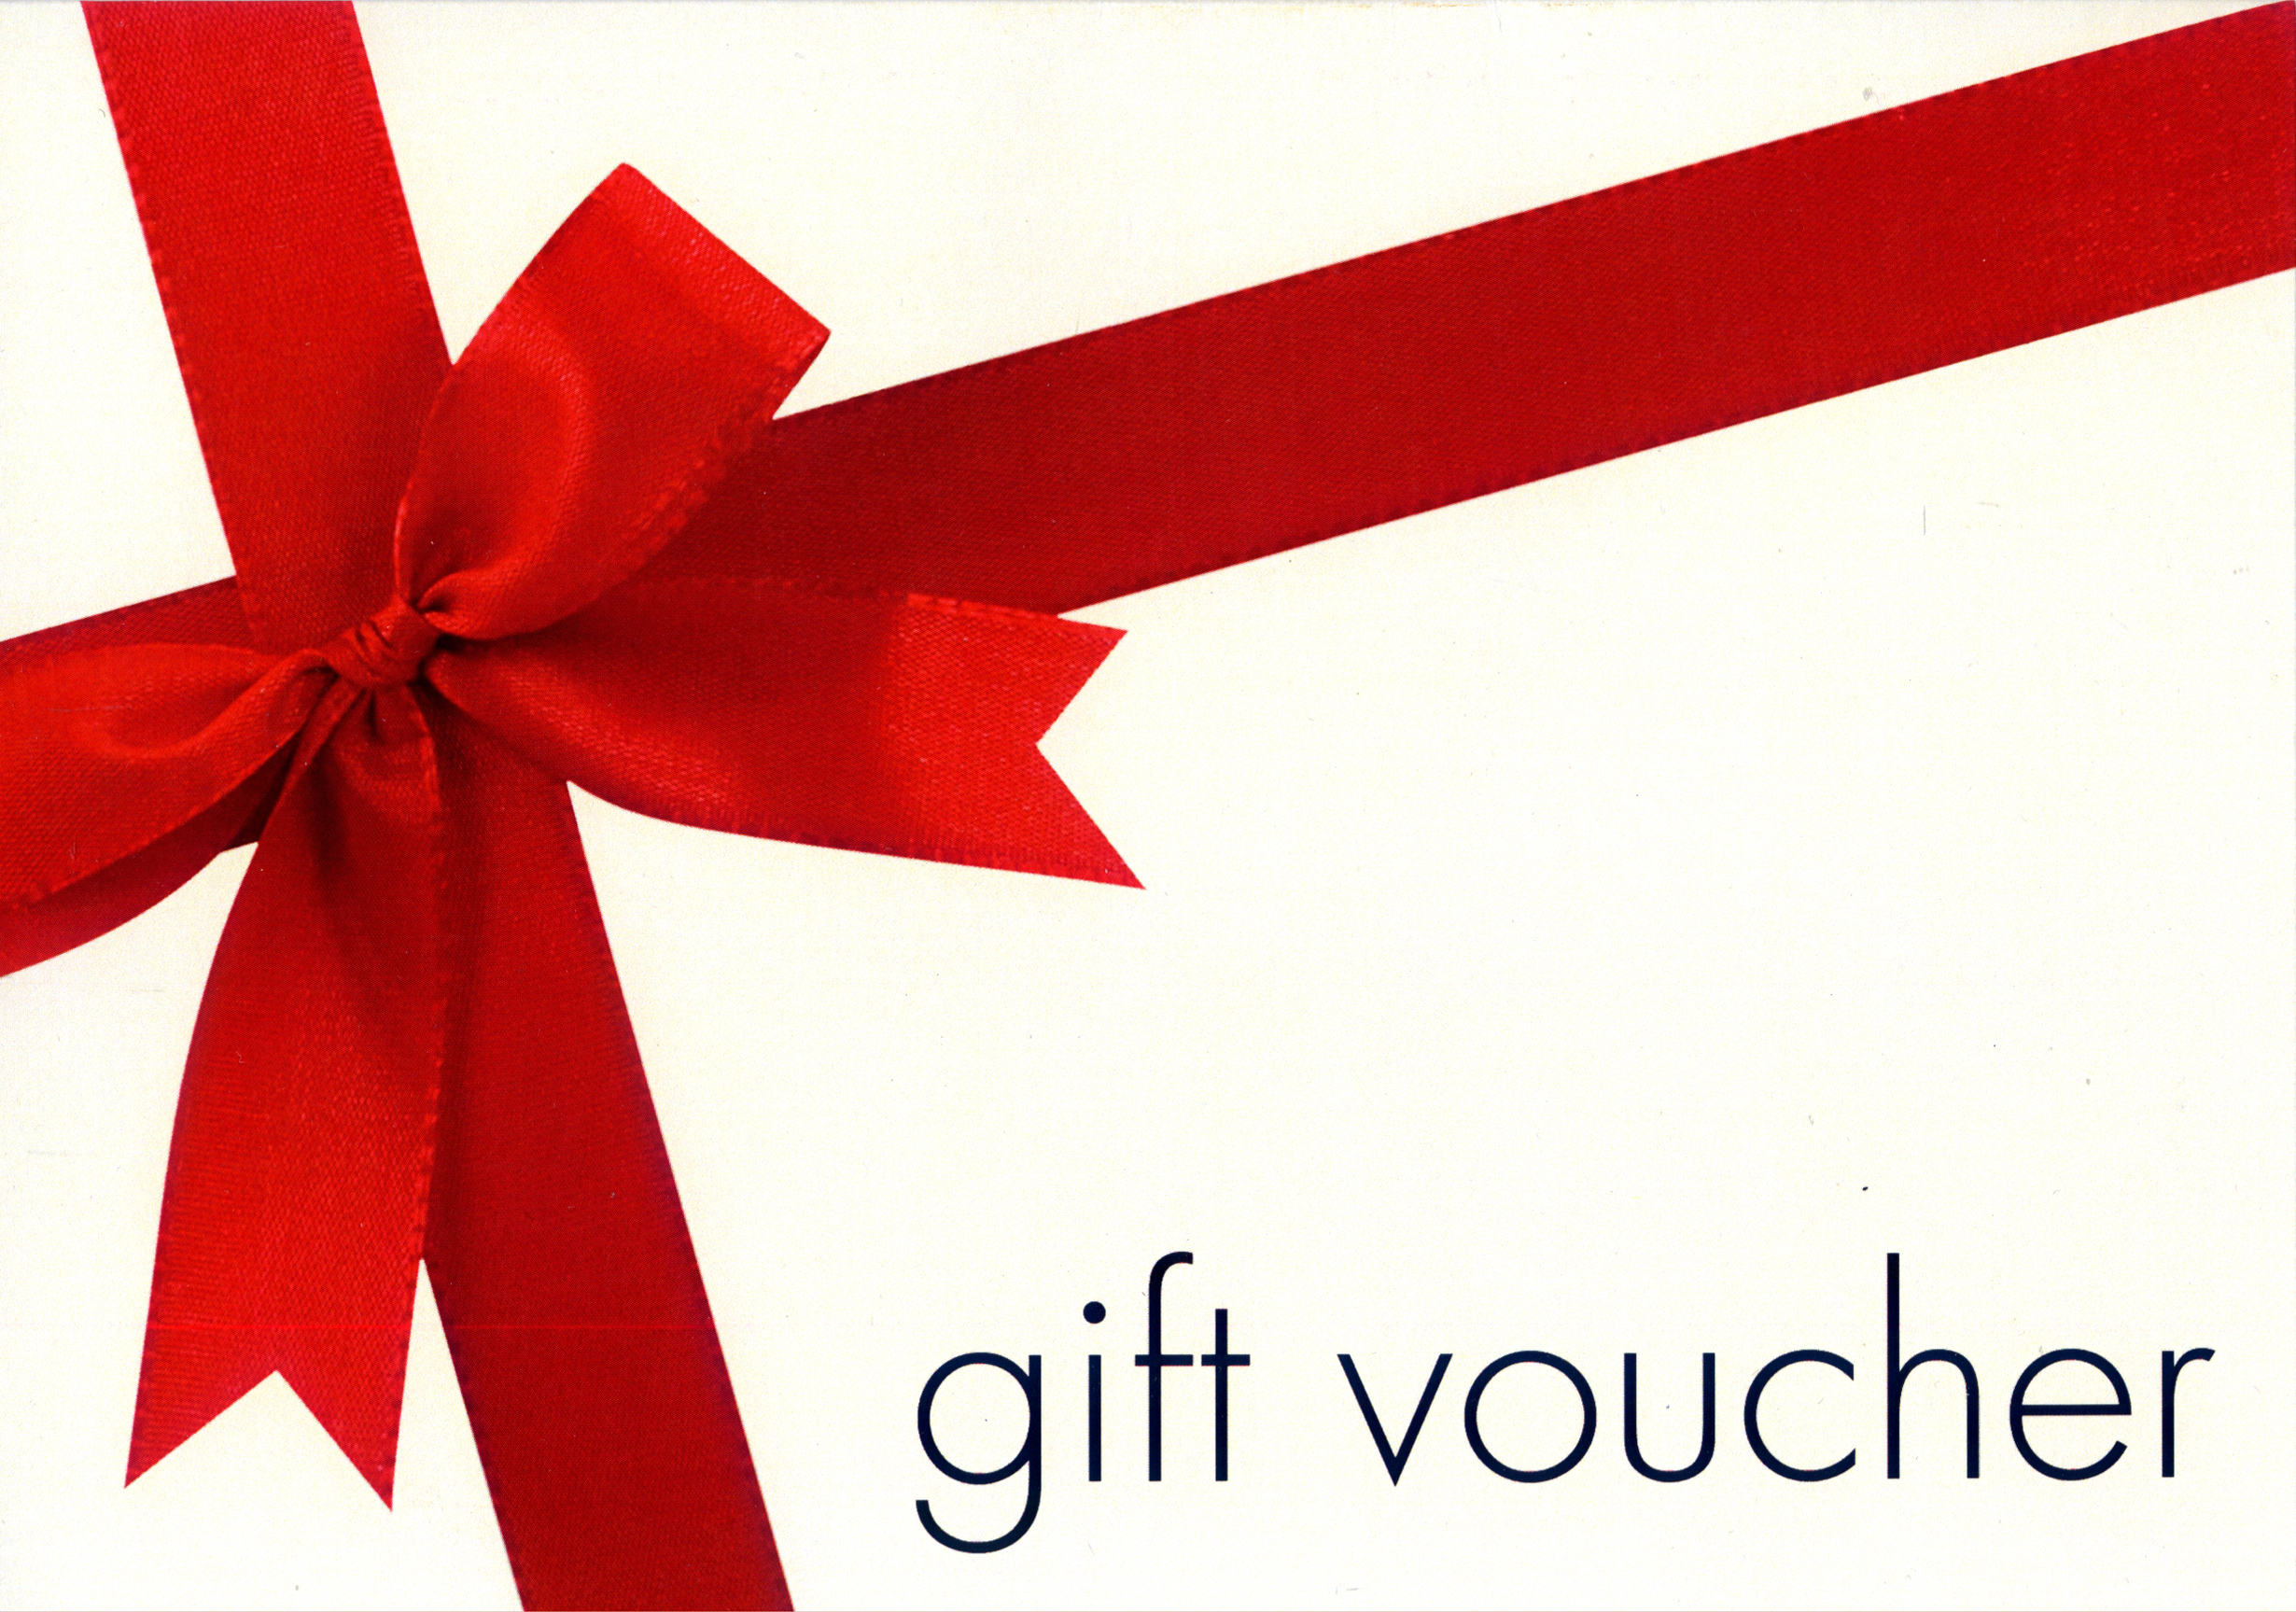 Dna personal trainers gift vouchers gift voucher001 dna personal trainers xflitez Gallery